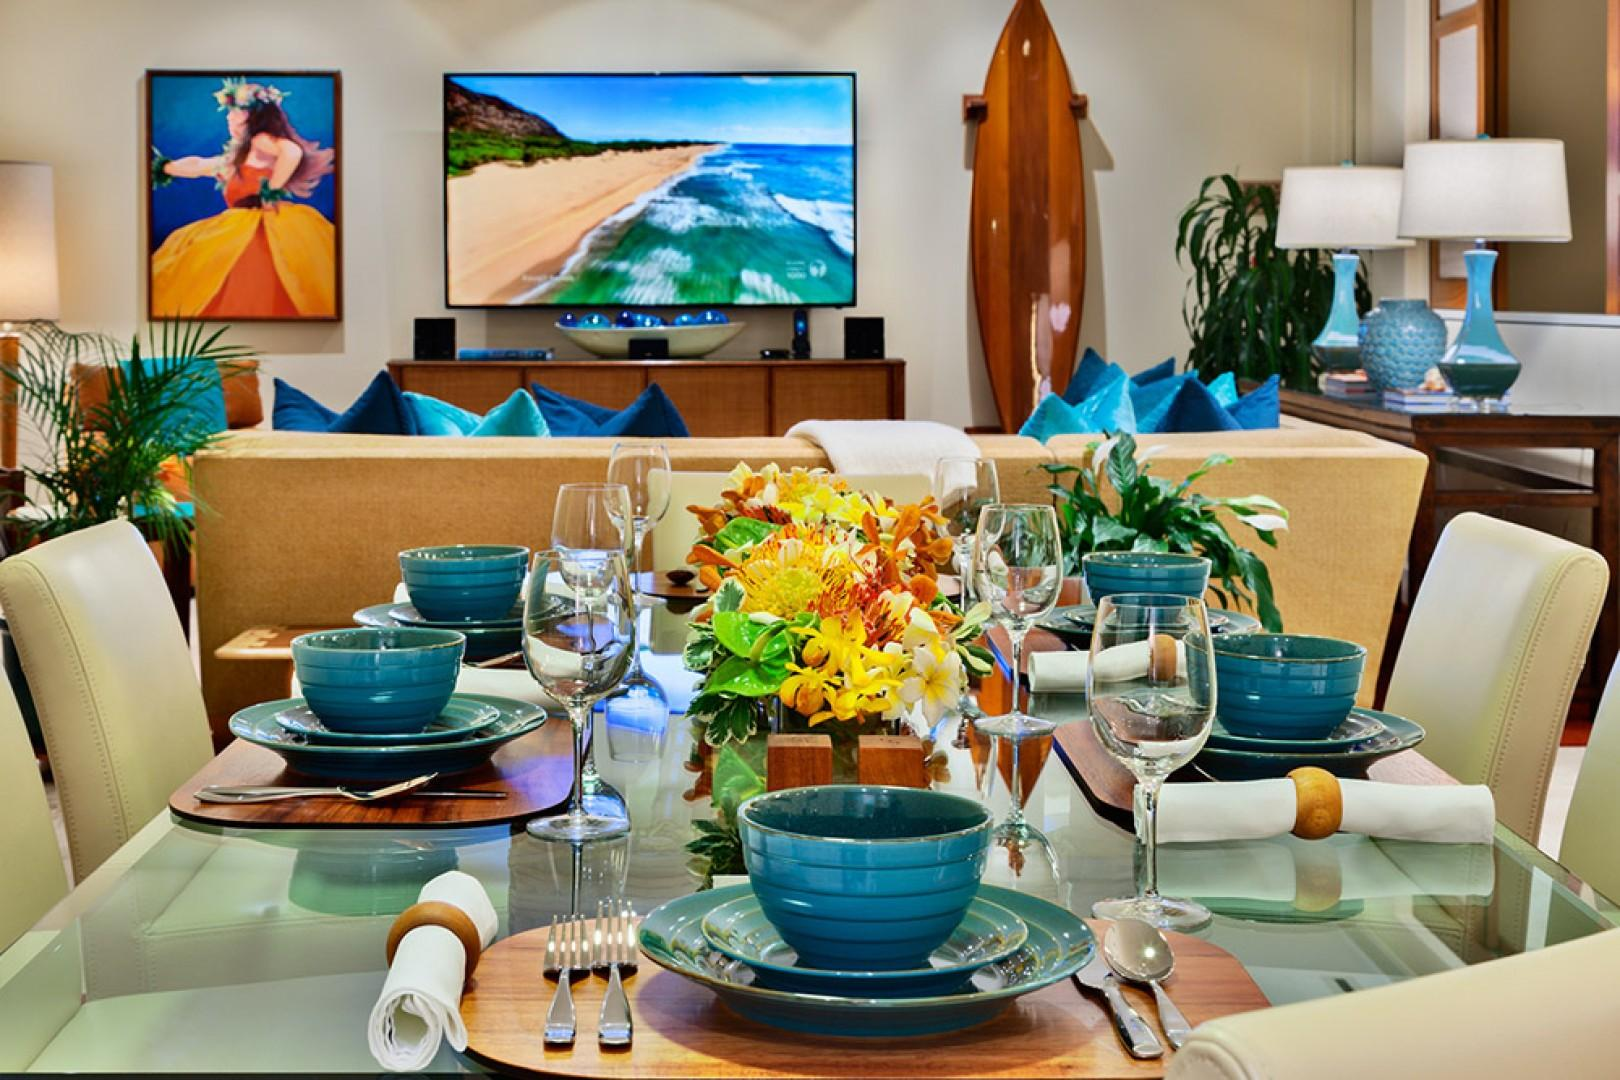 K507 Wailea Seashore Suite - Indoor Dining and Kitchen with Everything You May Need to Entertain and Dine